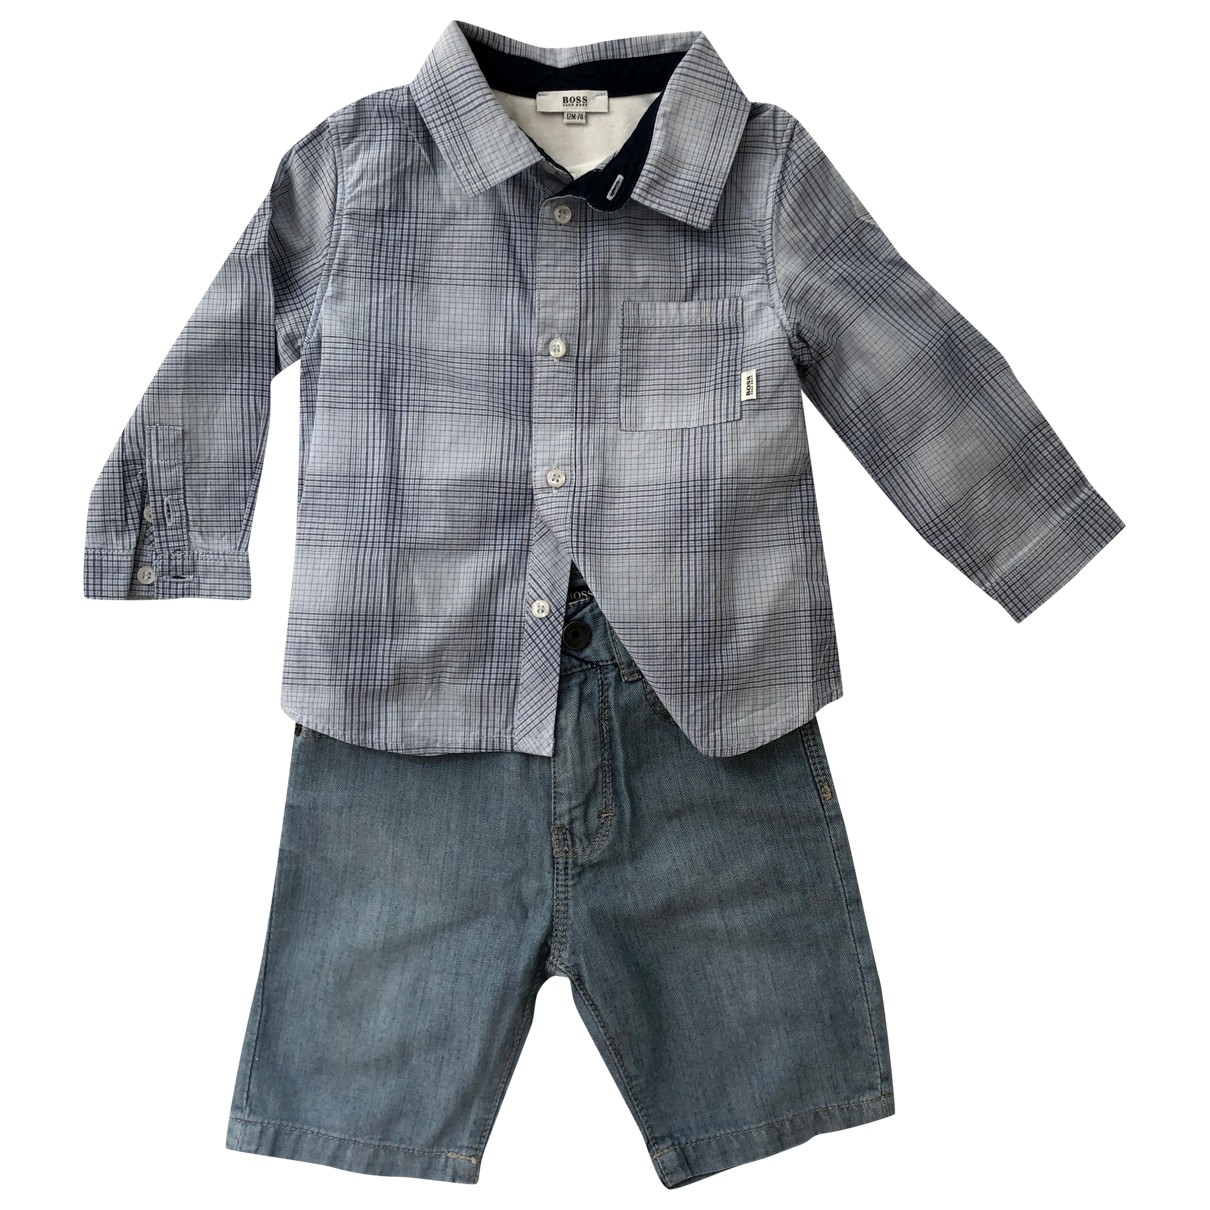 Boss \N Blue Cotton Outfits for Kids 12 months - up to 74cm FR